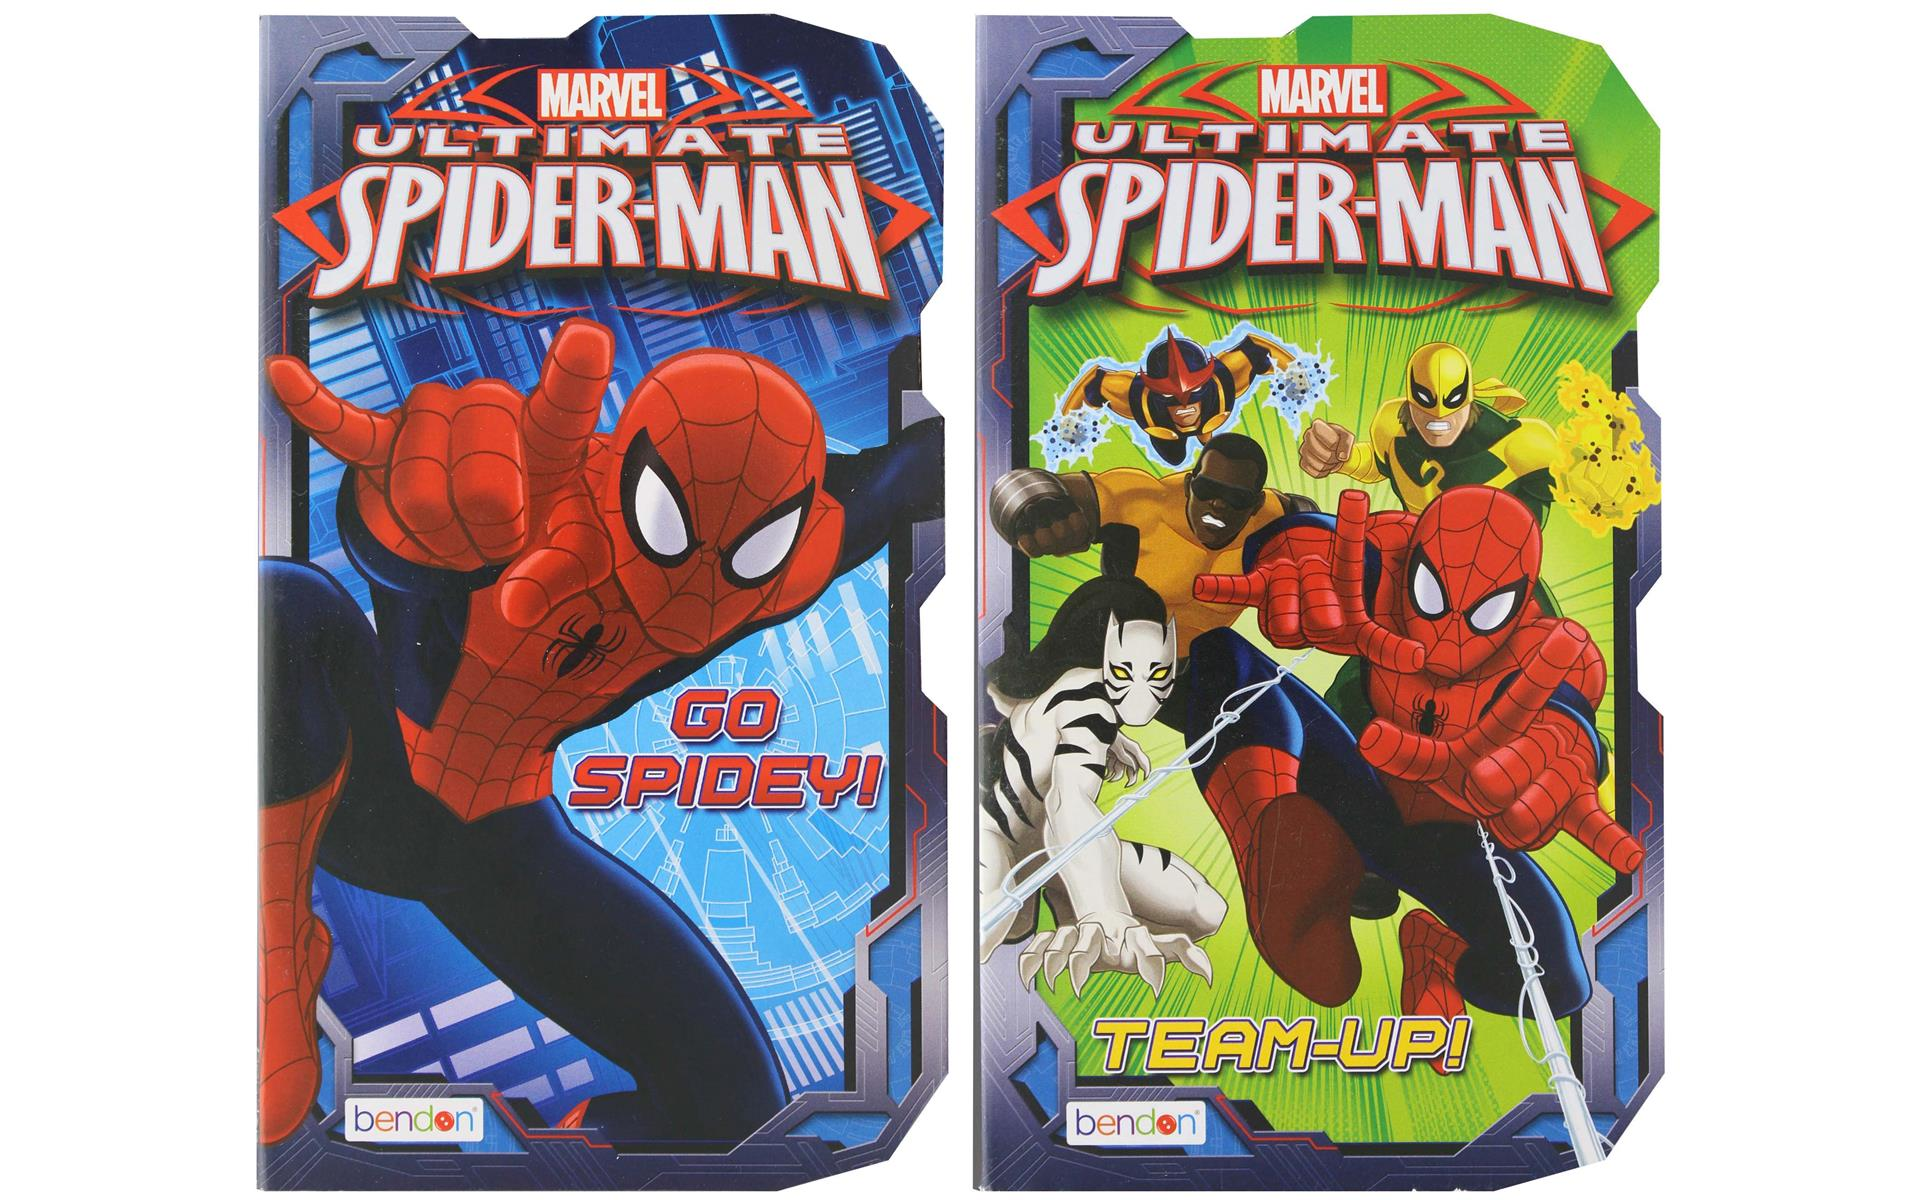 Bendon Board Bk Marvel Ultimate Spider Man Astd